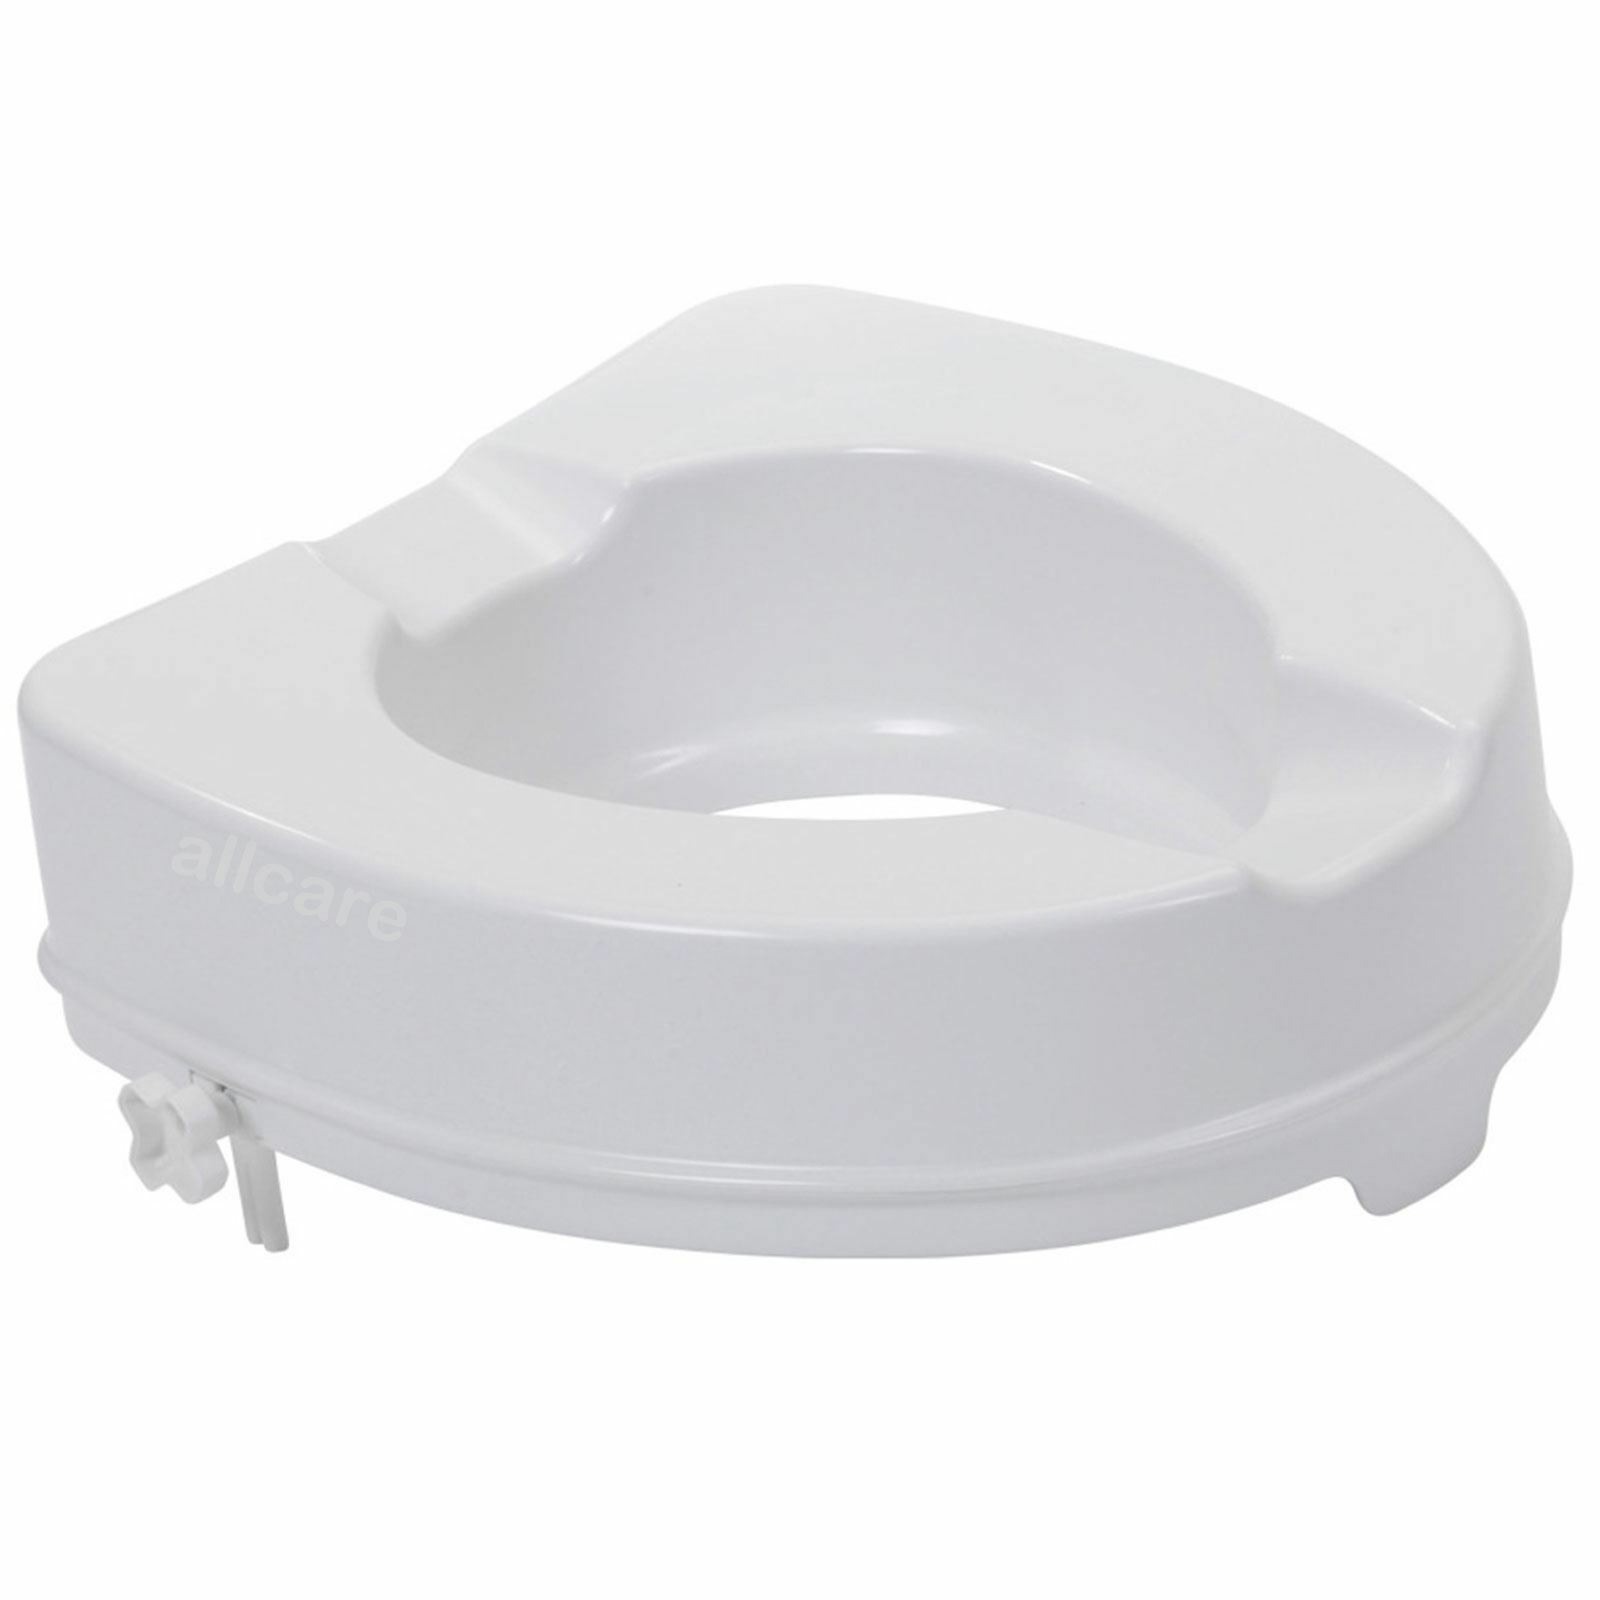 Wondrous Drive Medical 12062 2 Inch Raised Toilet Seat Without Lid Pdpeps Interior Chair Design Pdpepsorg